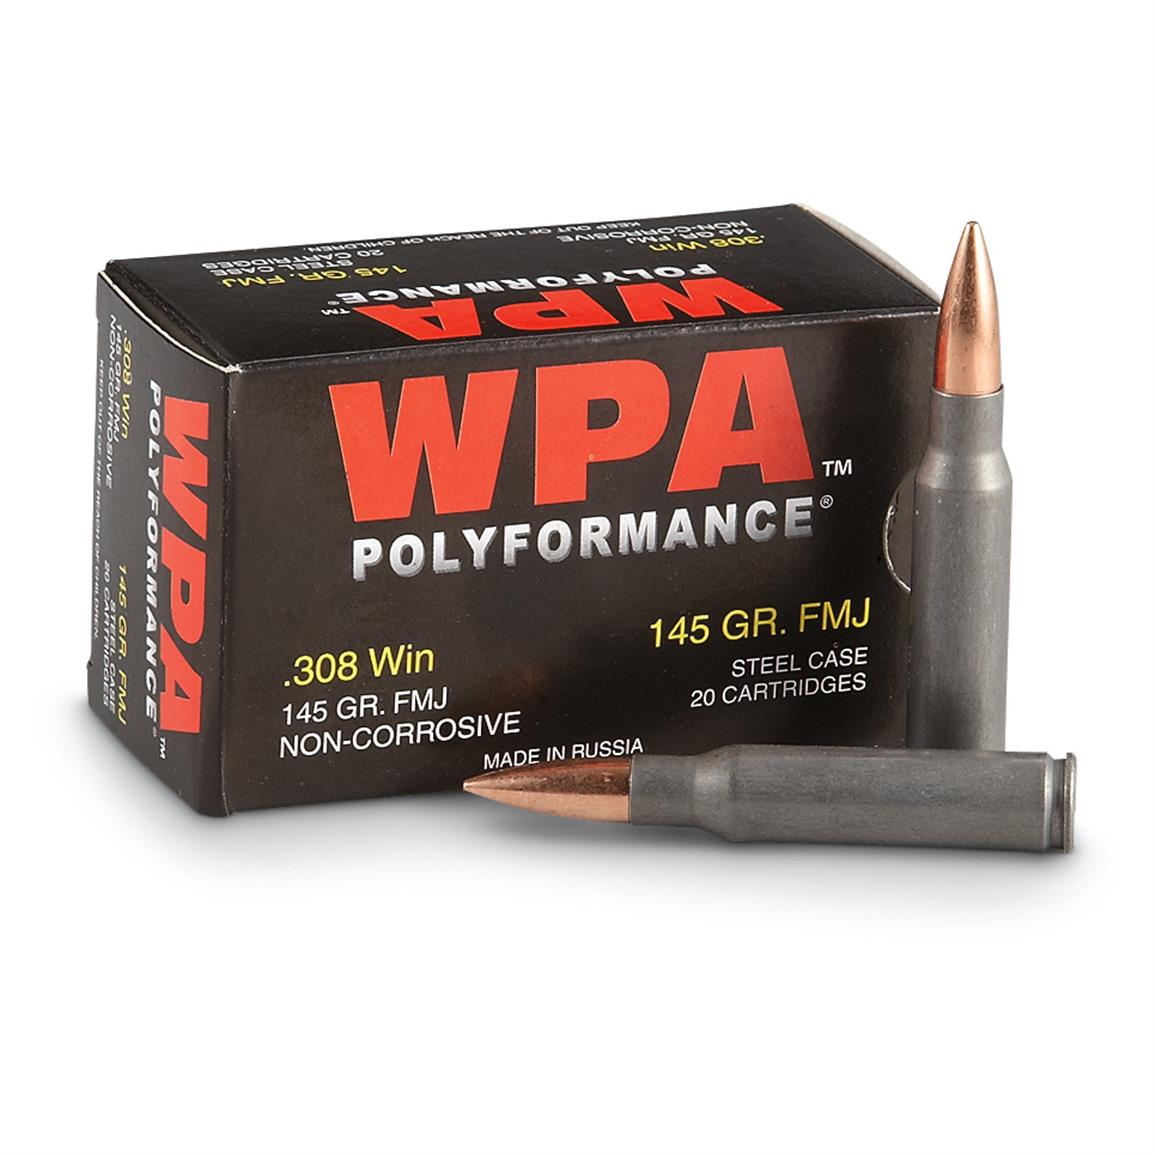 240 rounds WPA™ Polyformance® .308 FMJ Ammo